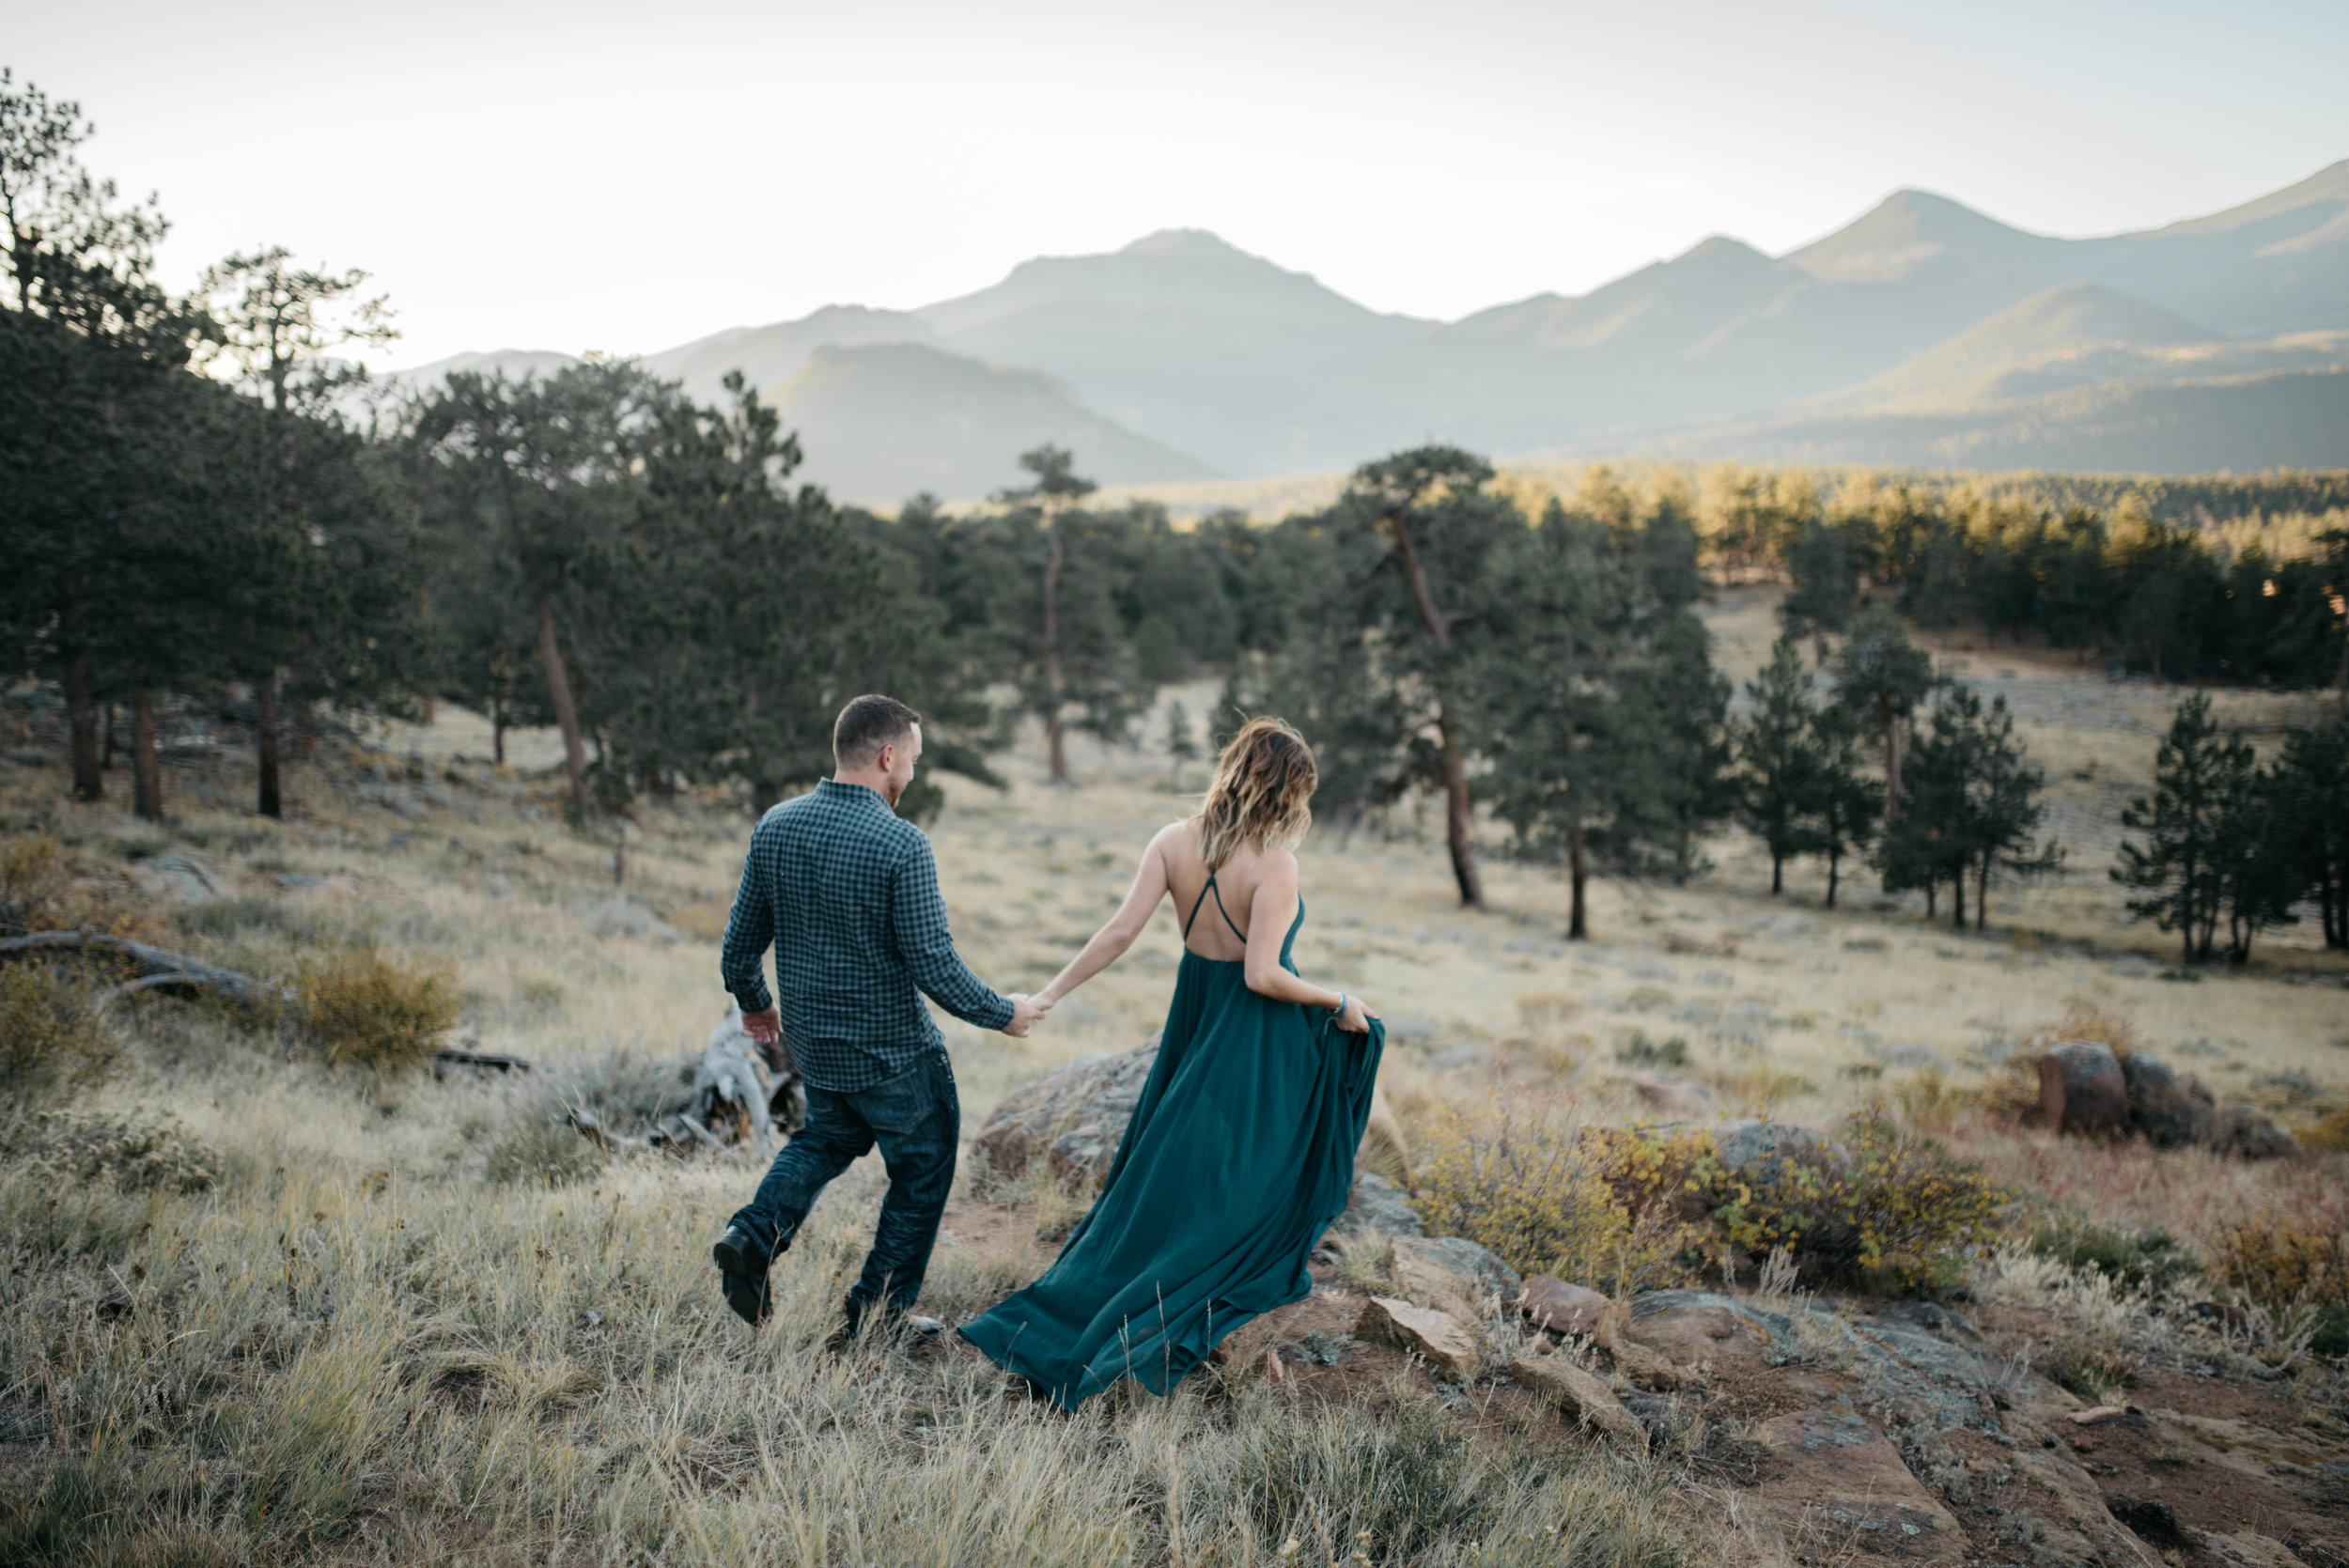 Colorado adventure elopement and destination wedding photofrapher.